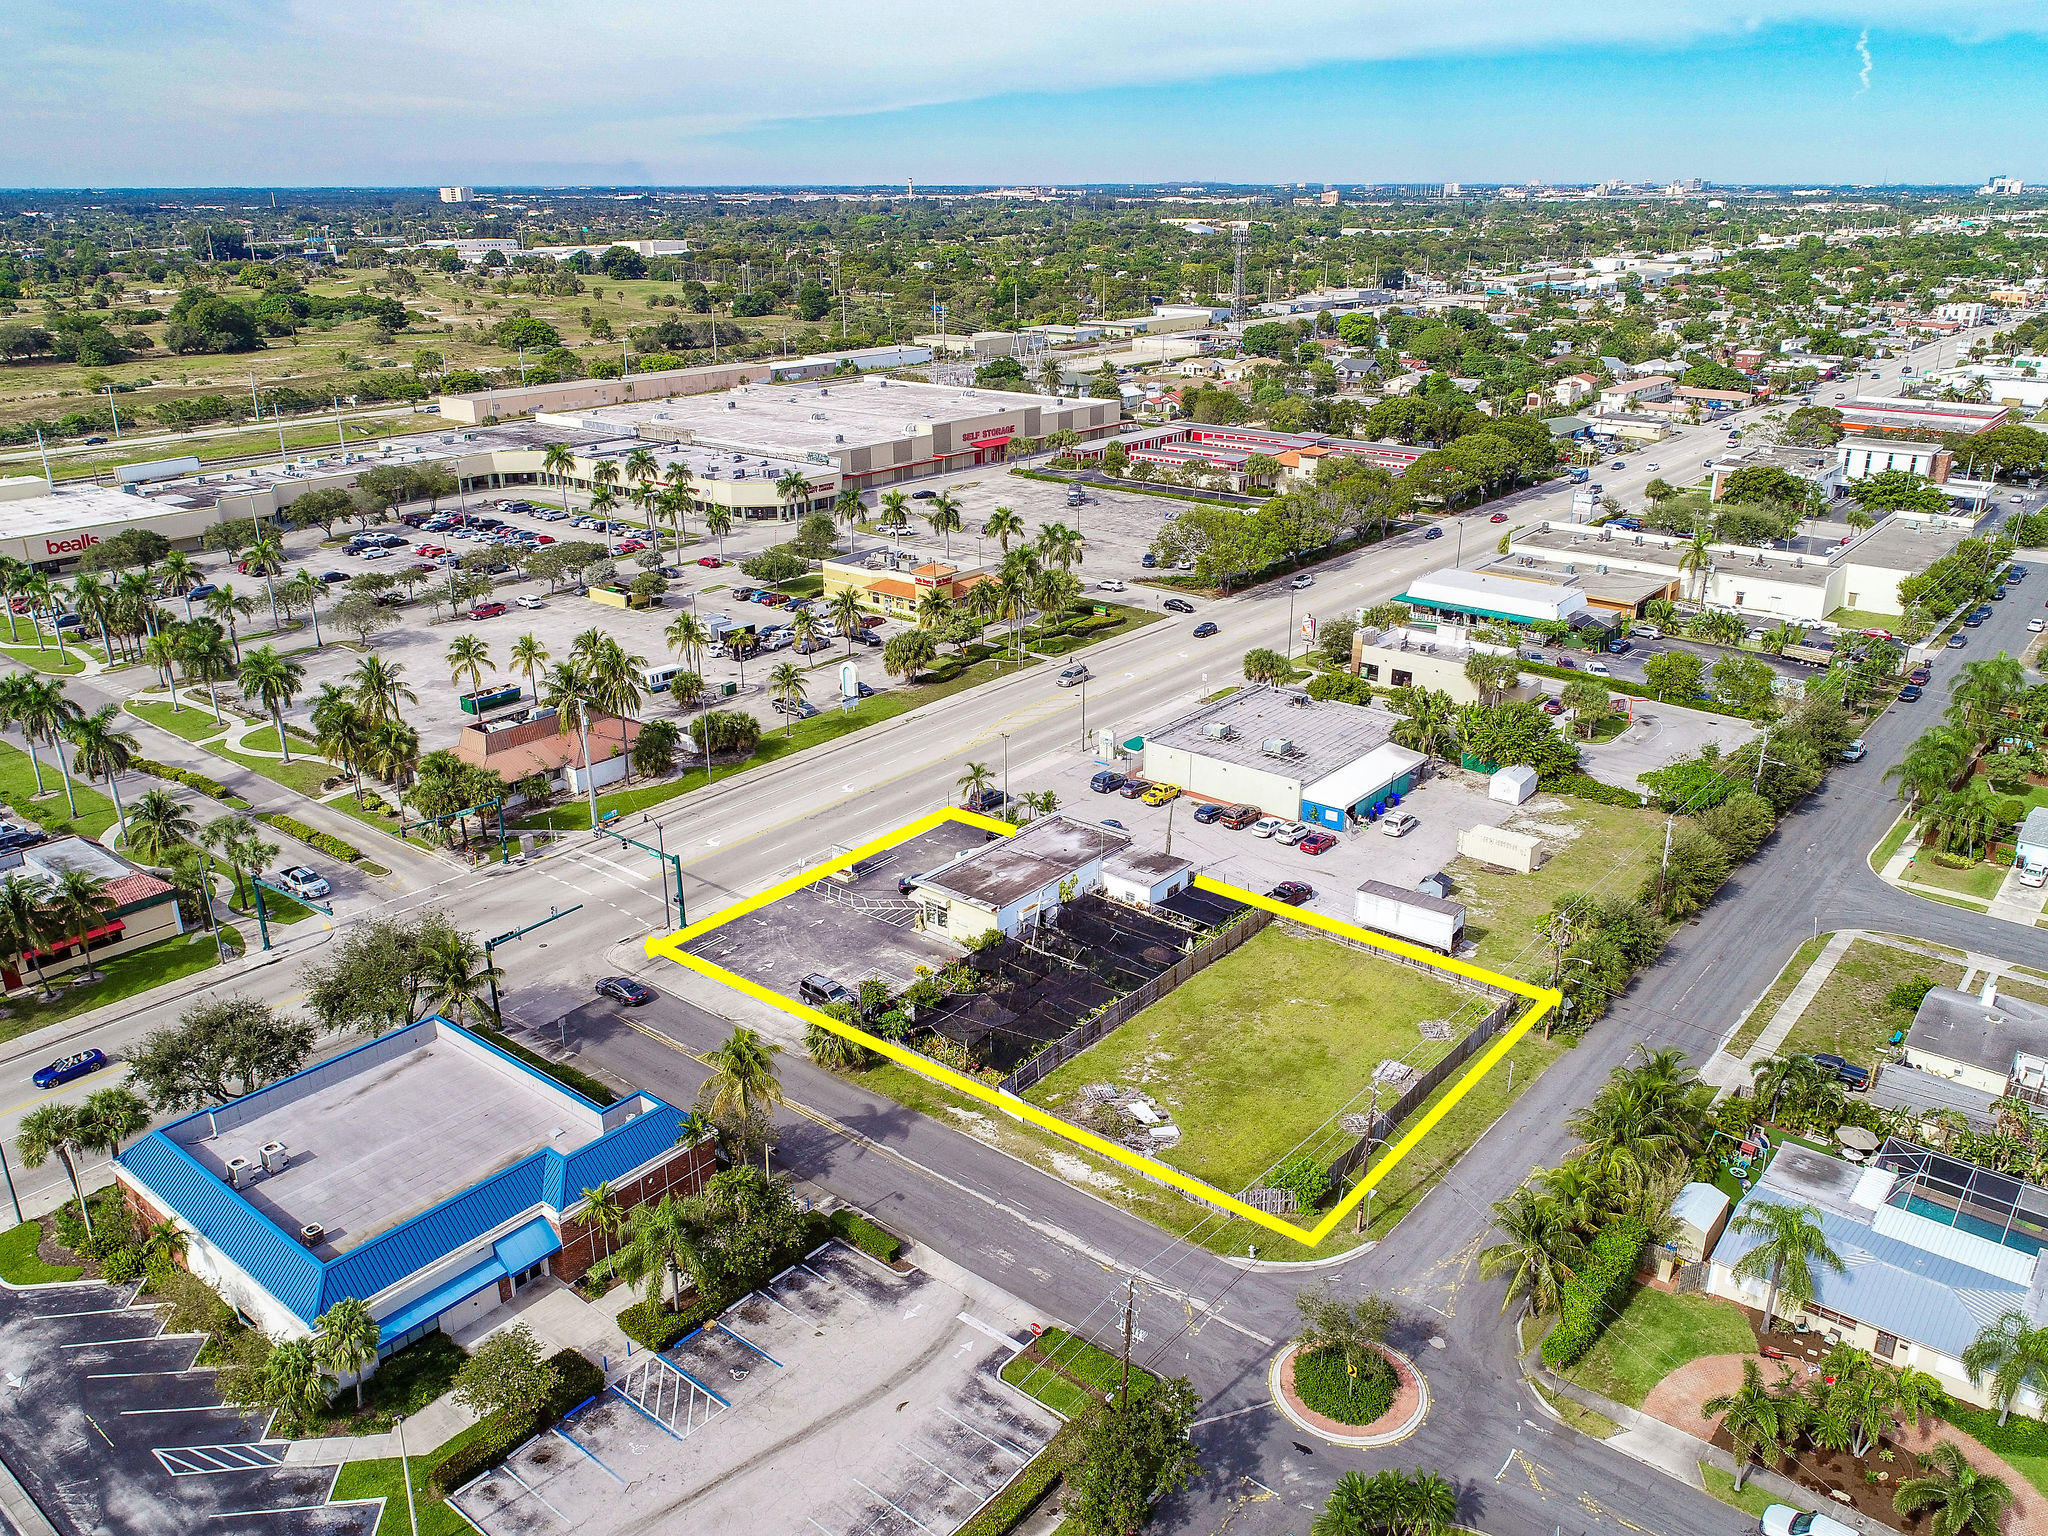 7620 S Dixie Highway - West Palm Beach, Florida